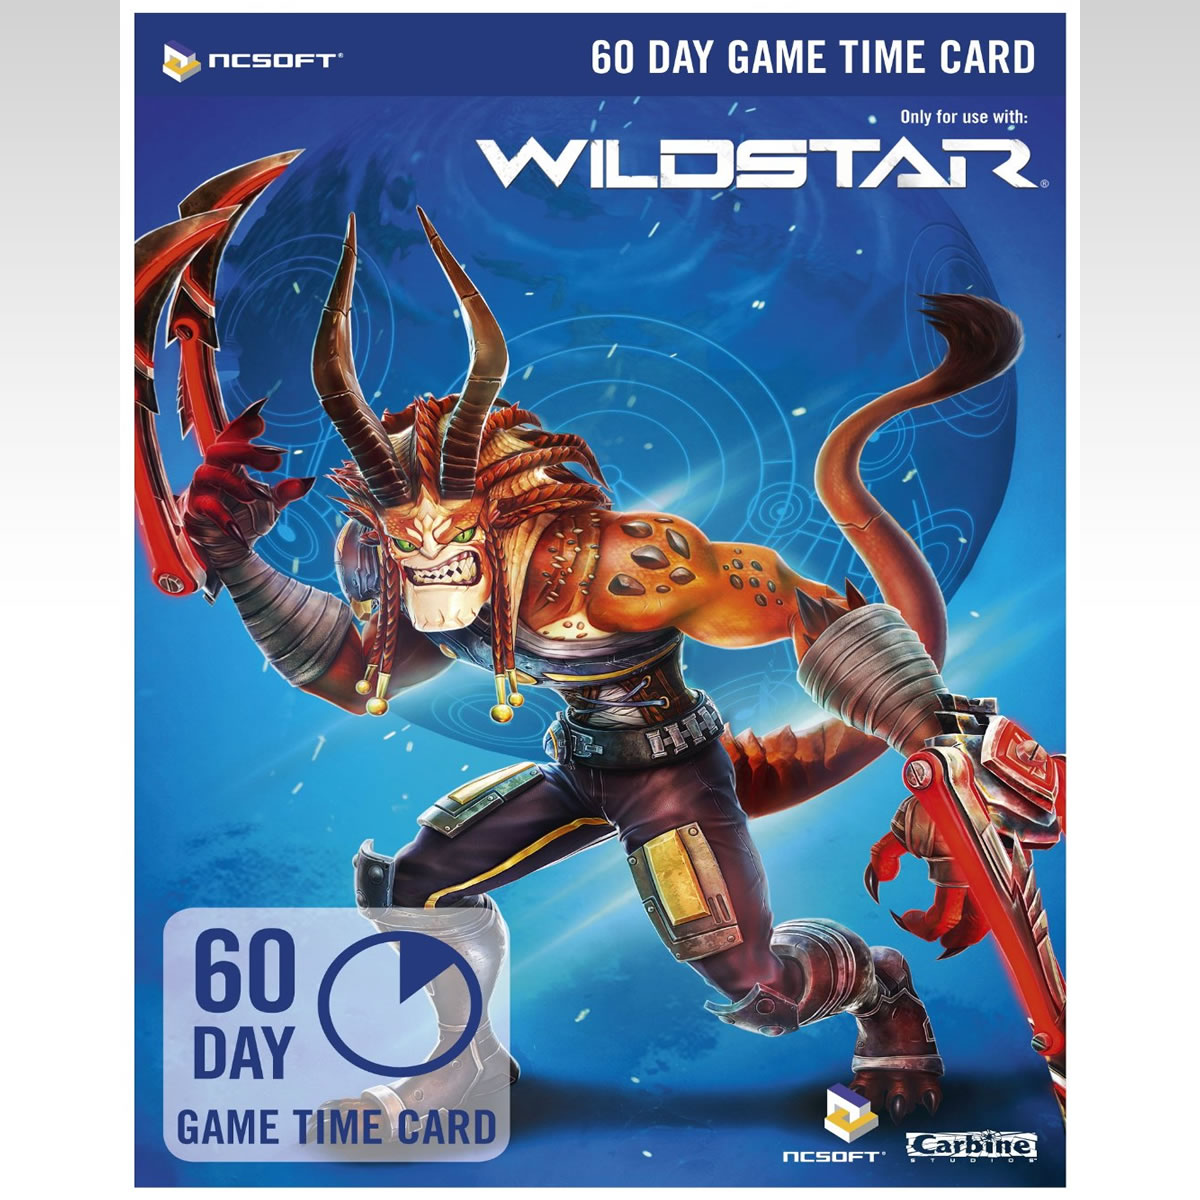 WILDSTAR 60 DAY GAME TIME CARD - WILDSTAR ������������ ����� ������ 60 ������ (PC)